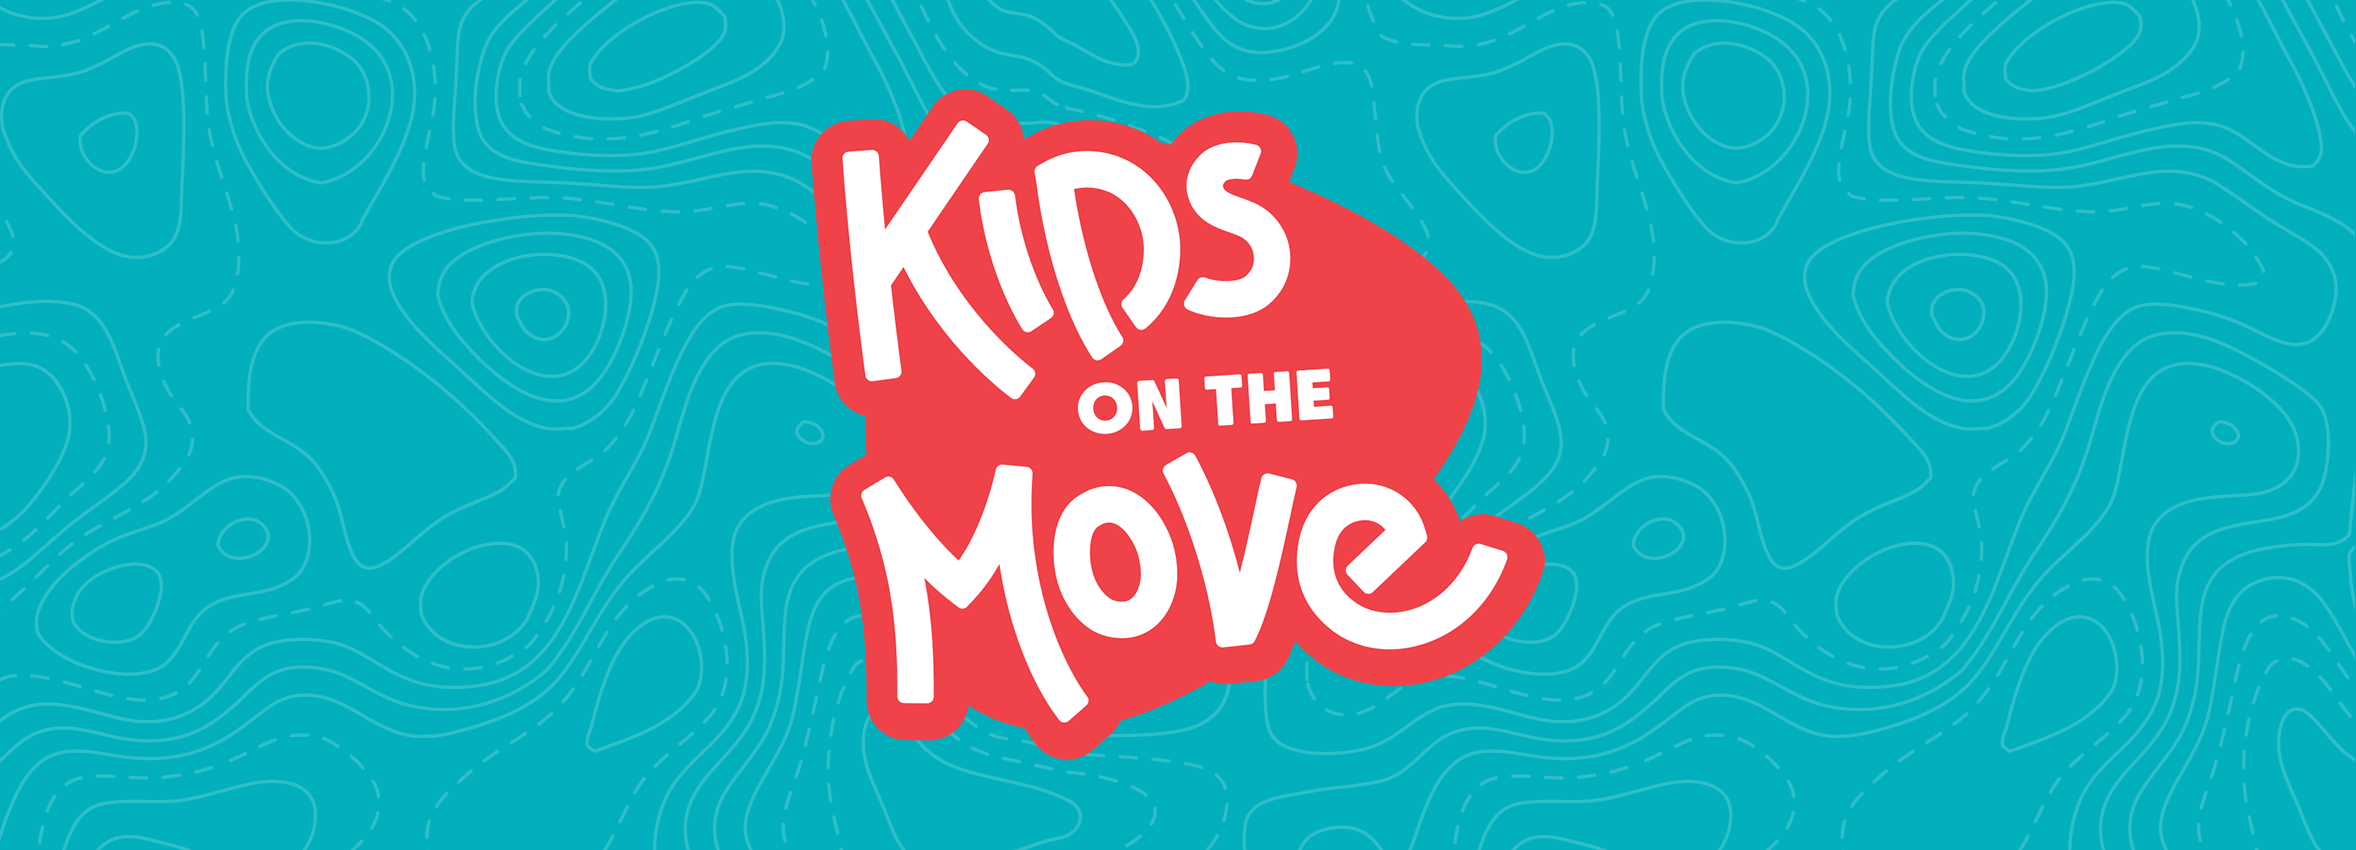 Kids on The Move